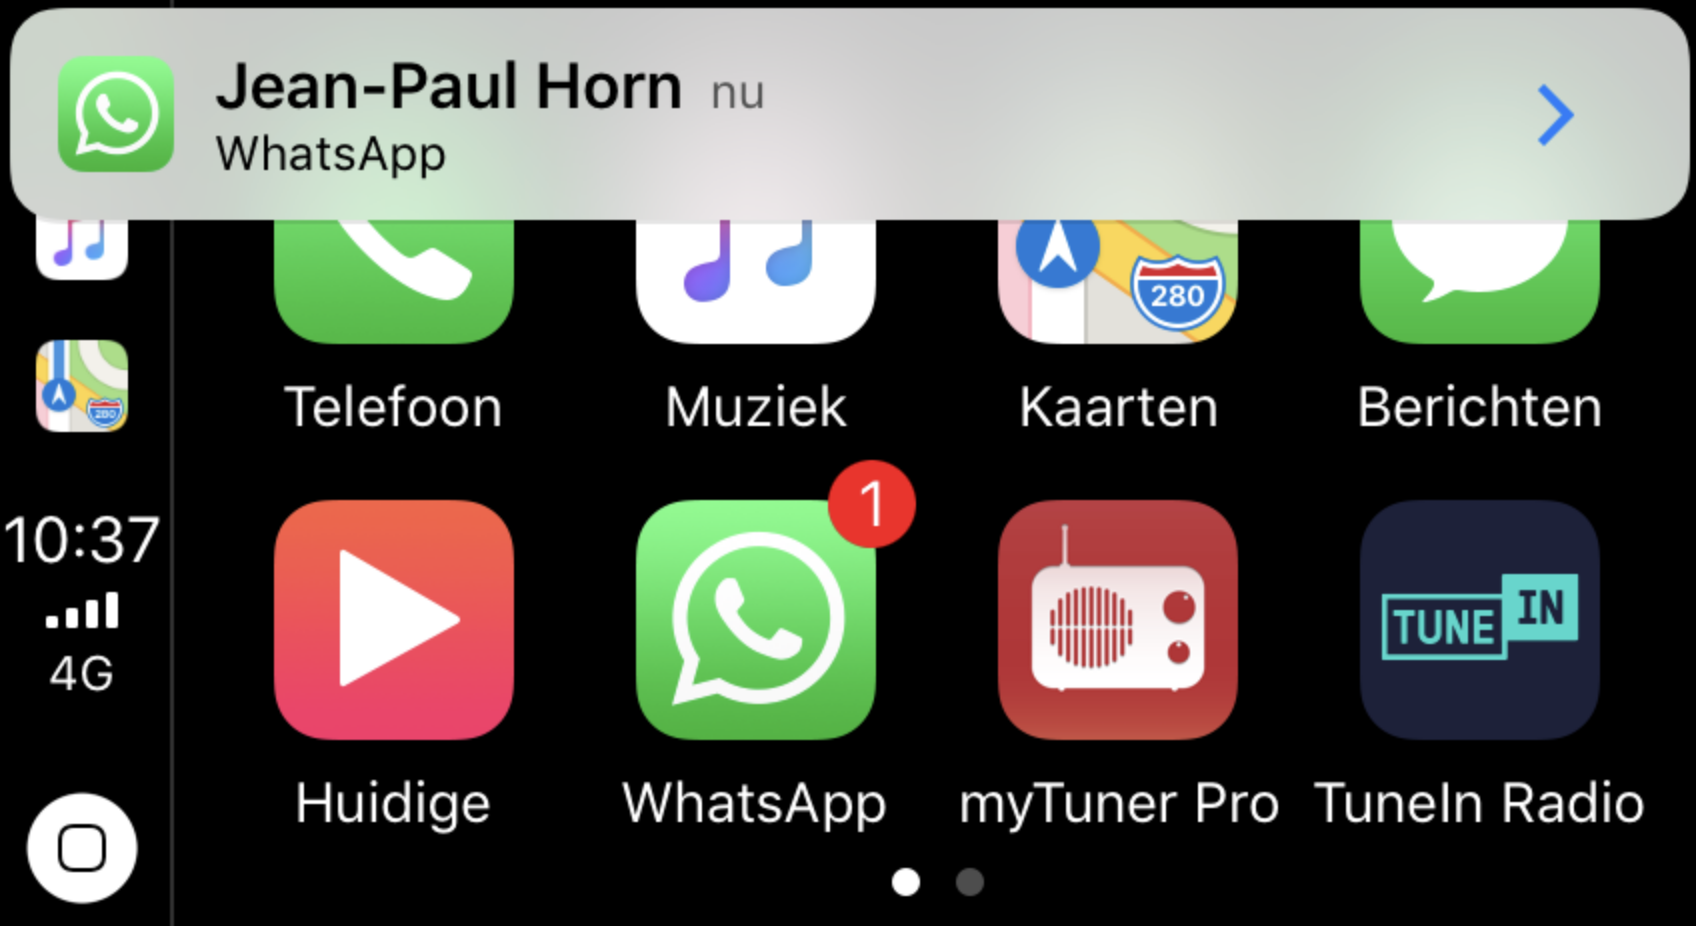 WhatsApp now supported by Apple's CarPlay